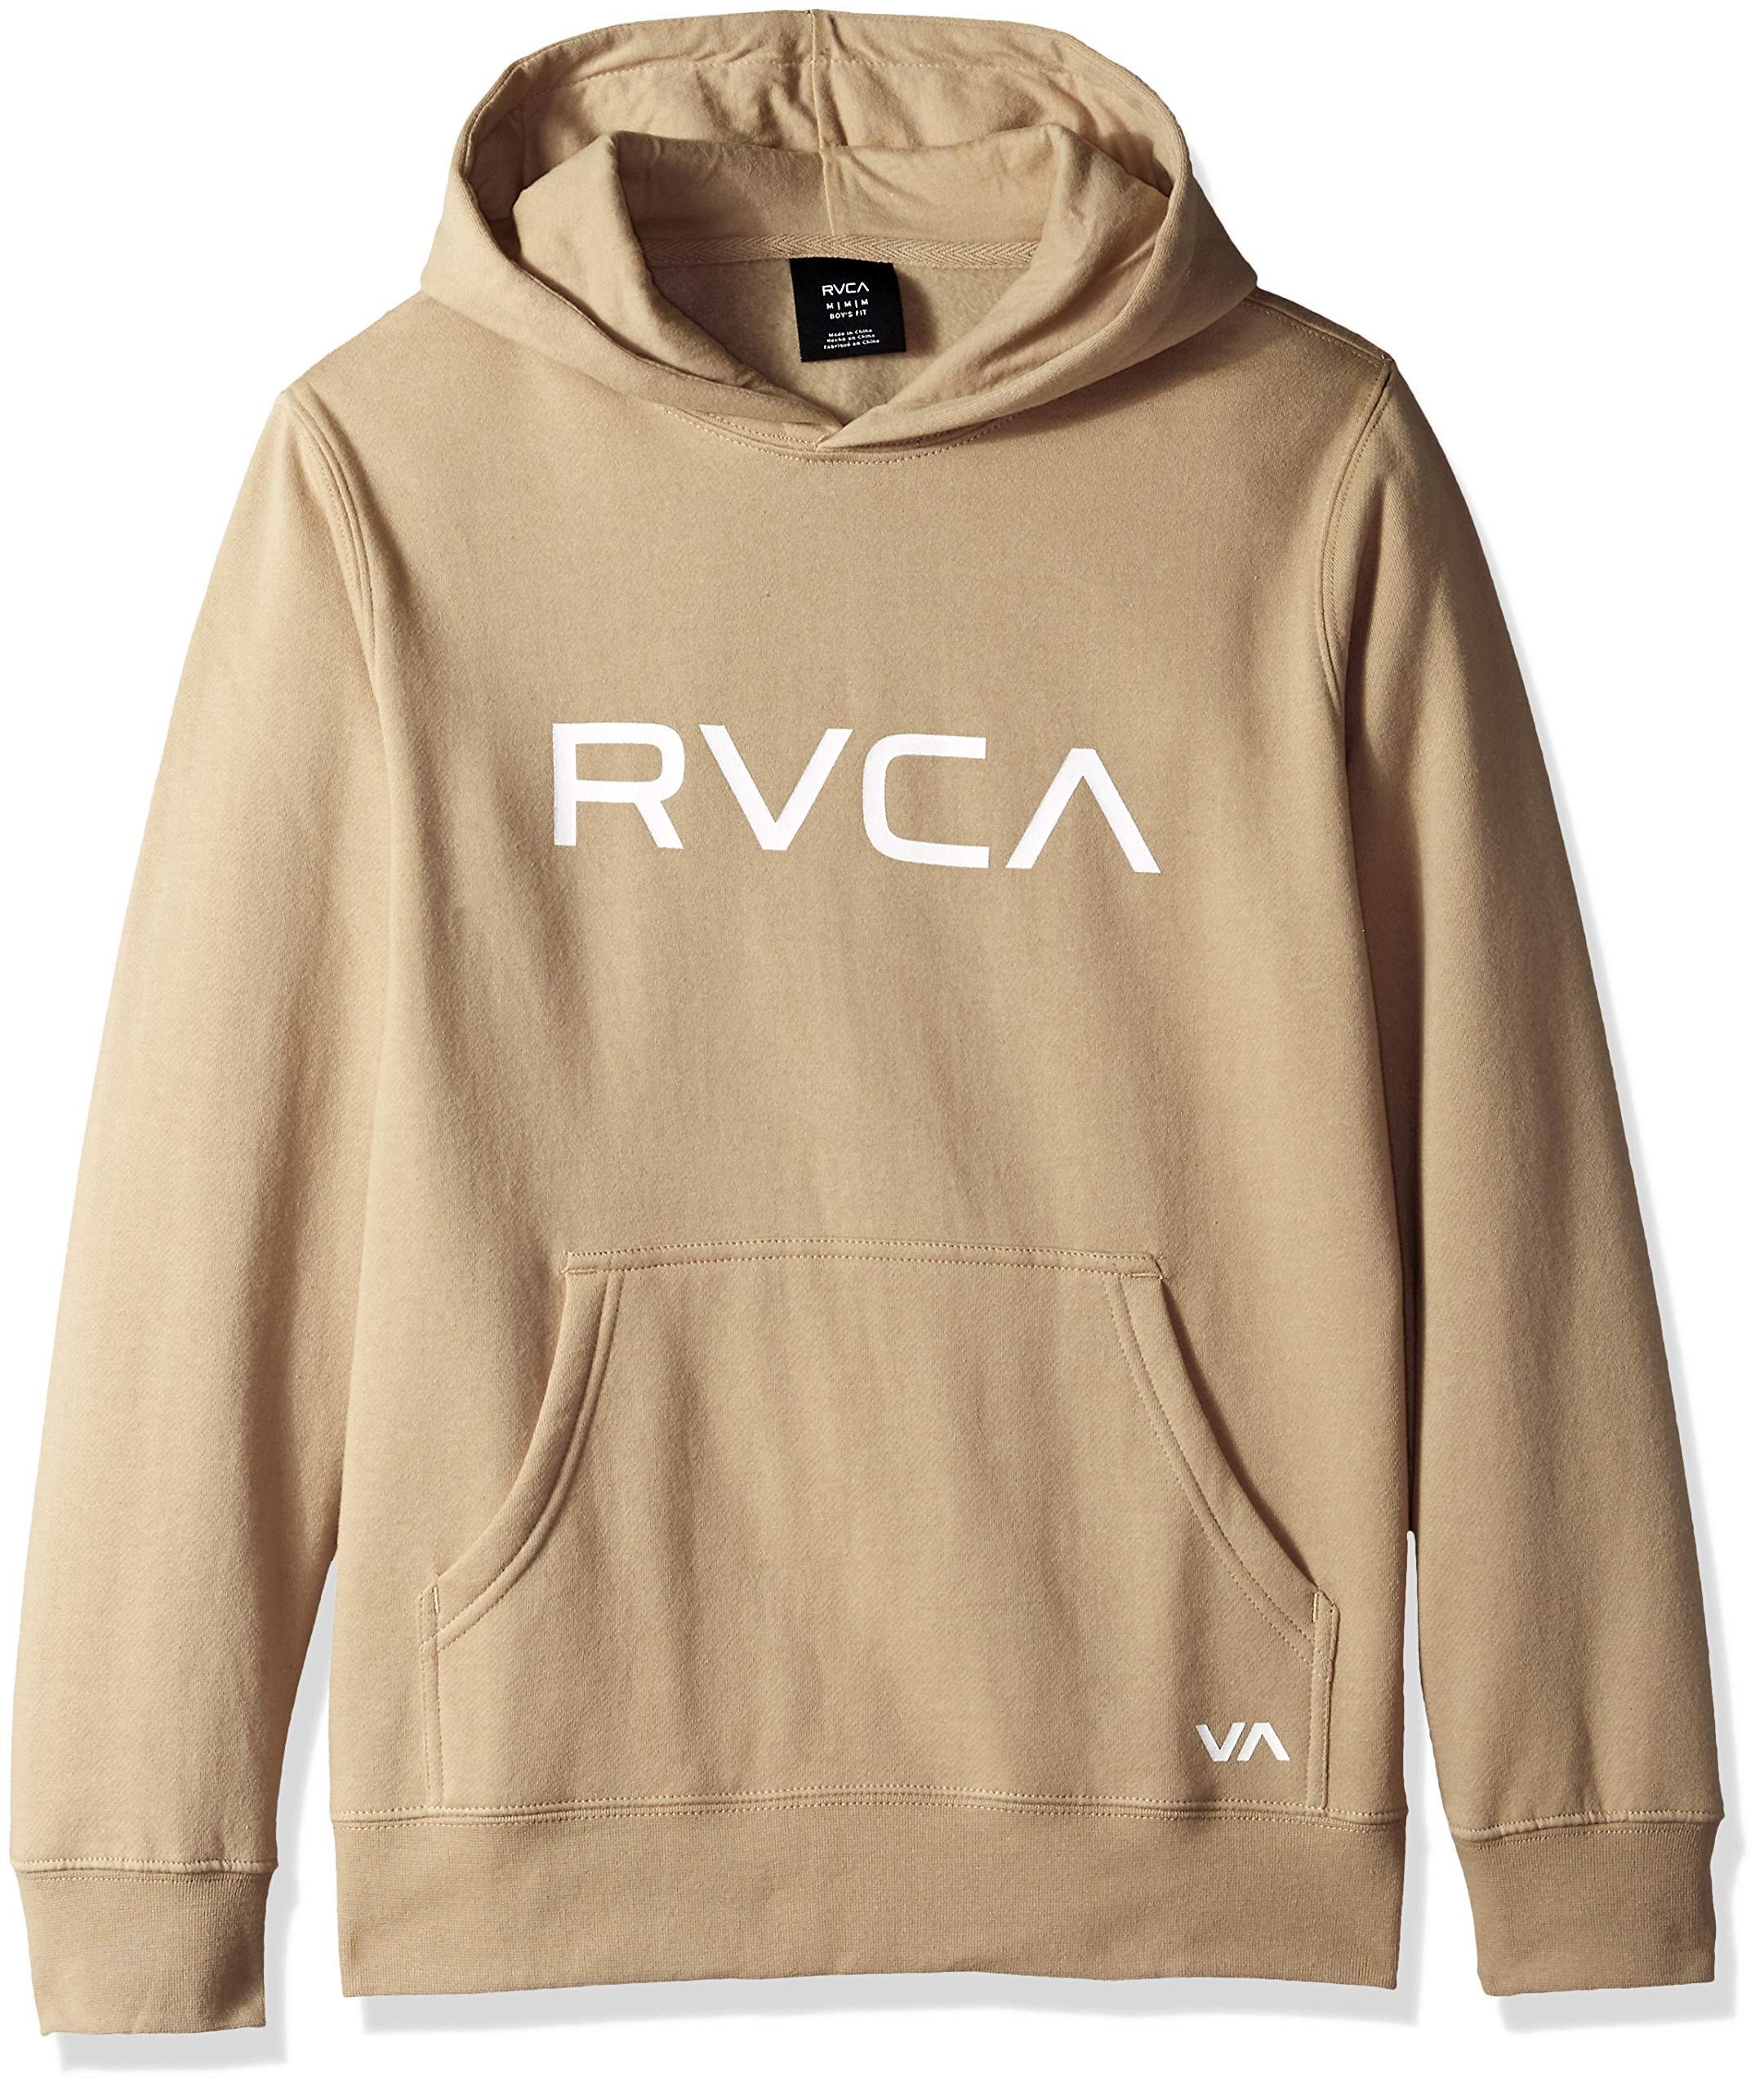 RVCA Boys Big Pullover Hooded Sweatshirt, Khaki, M